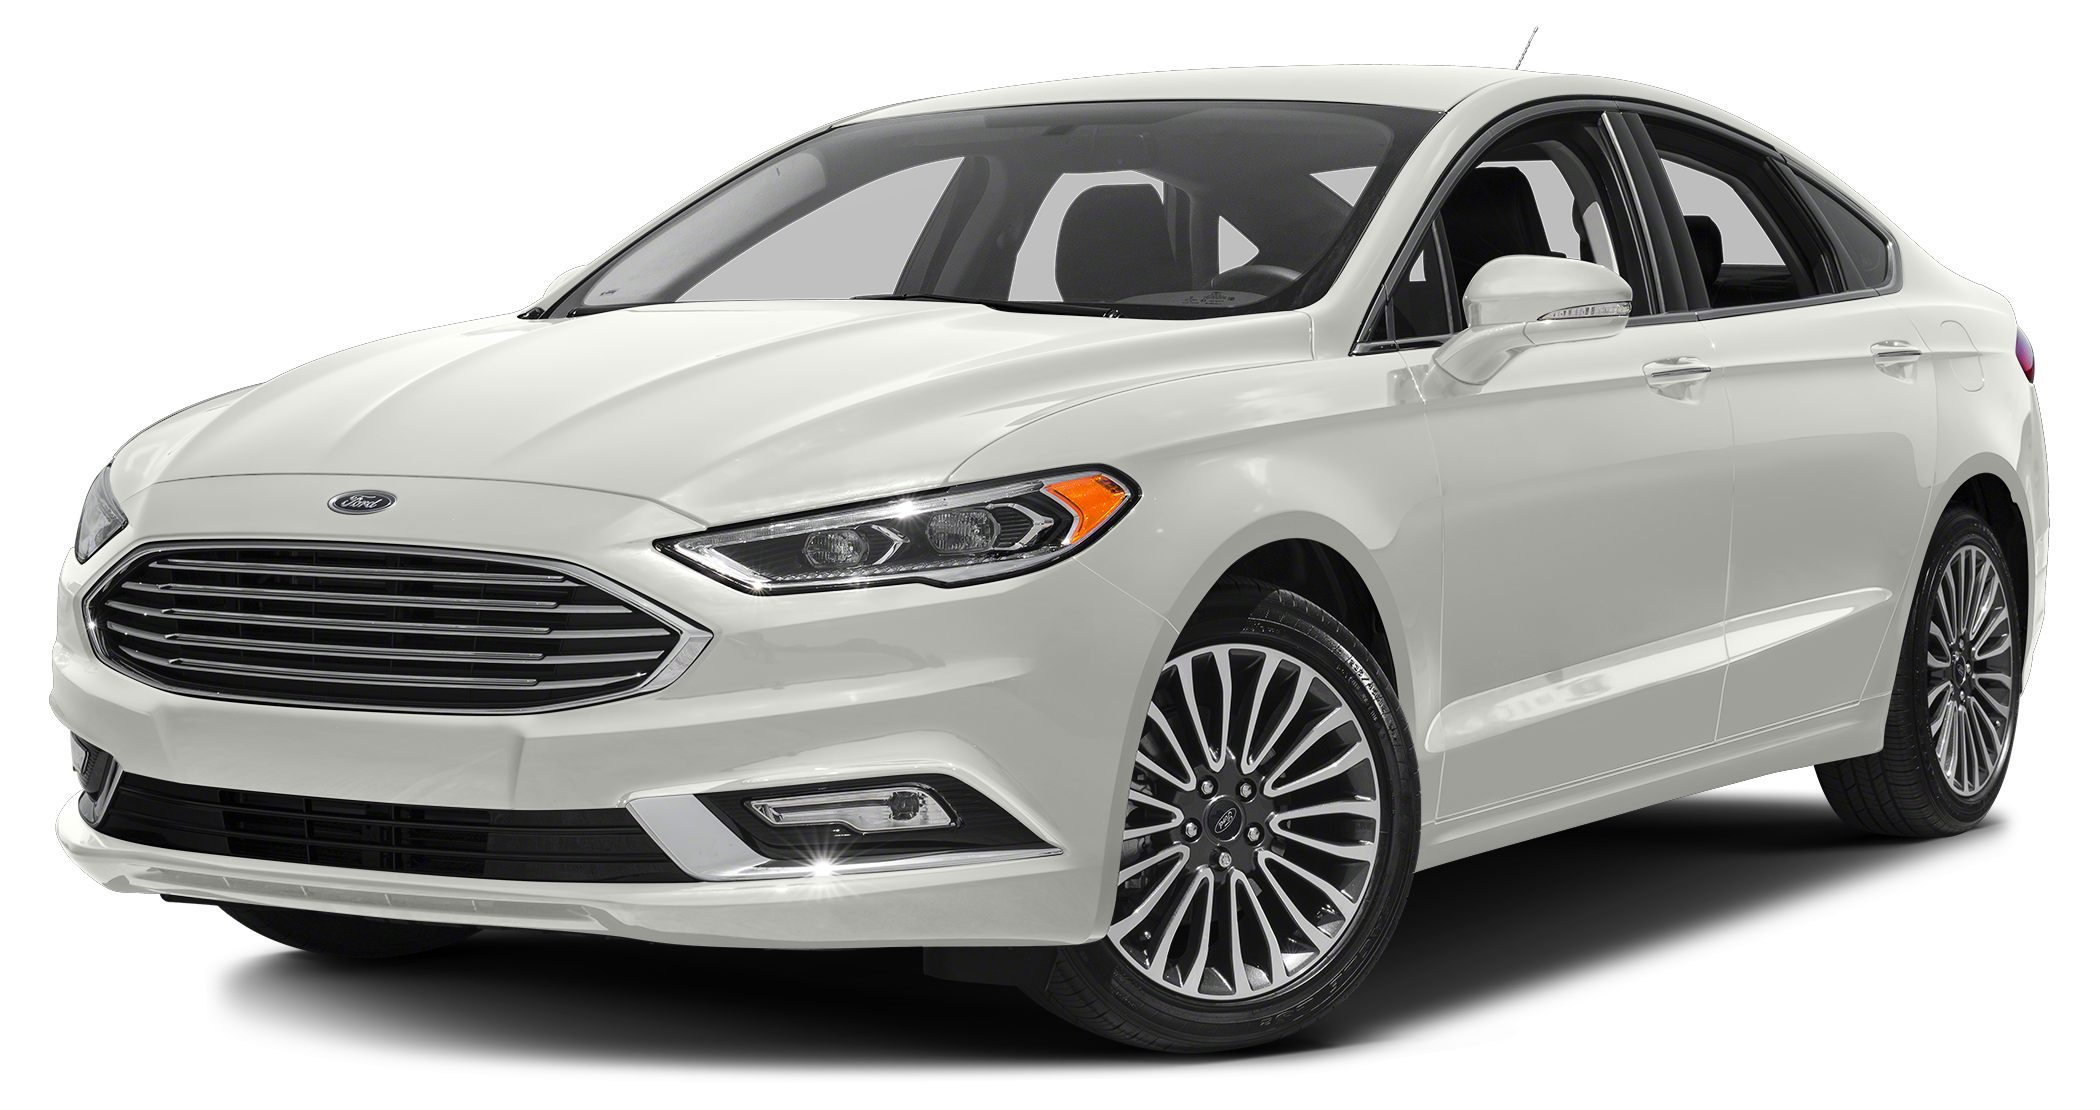 2017 Ford Fusion Titanium Here at Lake Keowee Ford our customers come first and our prices will no